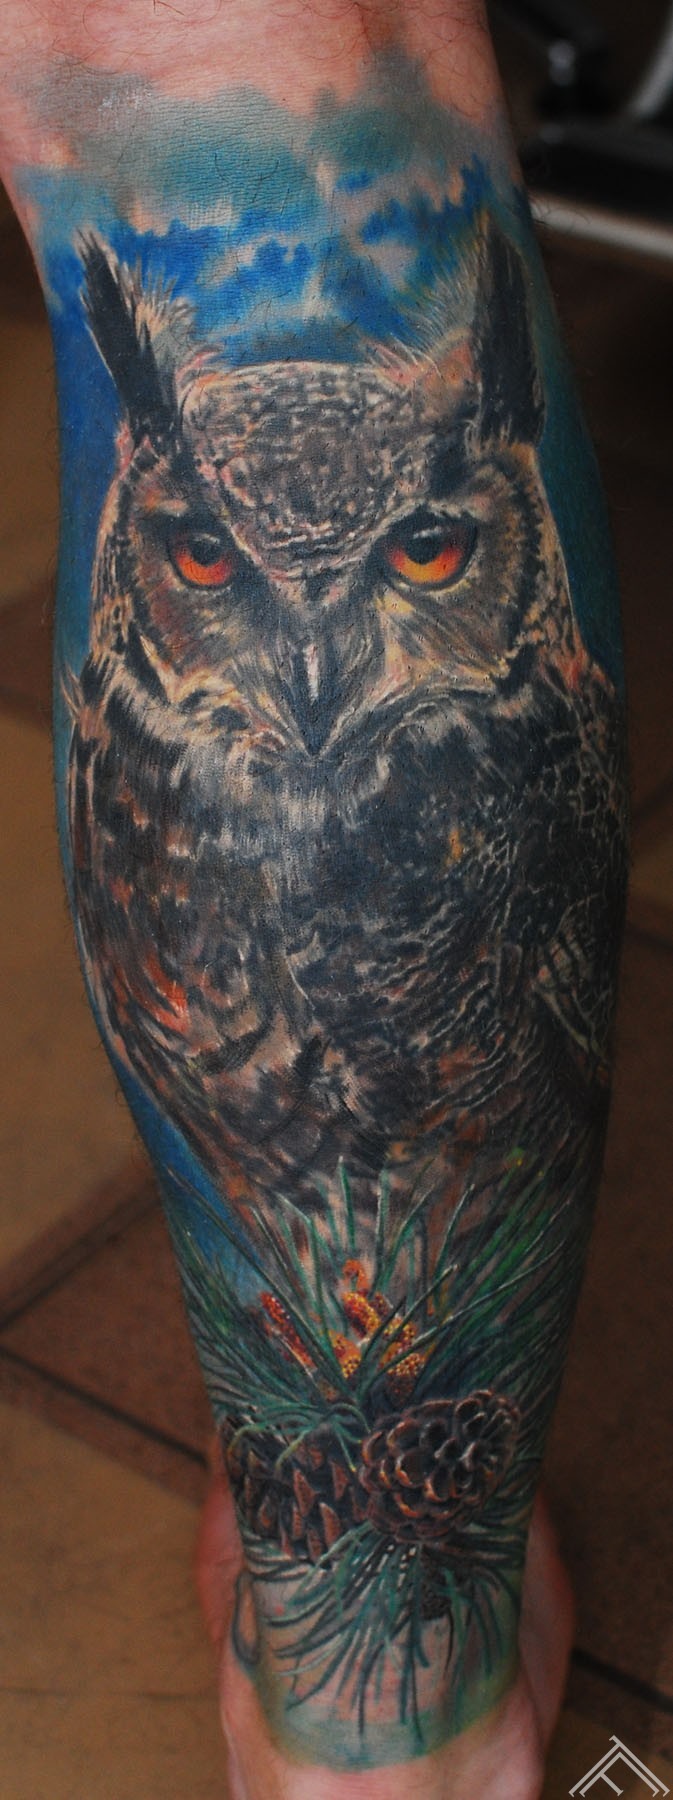 owl_tattoo_marispavlo_art_tattoofrequency_portfolio